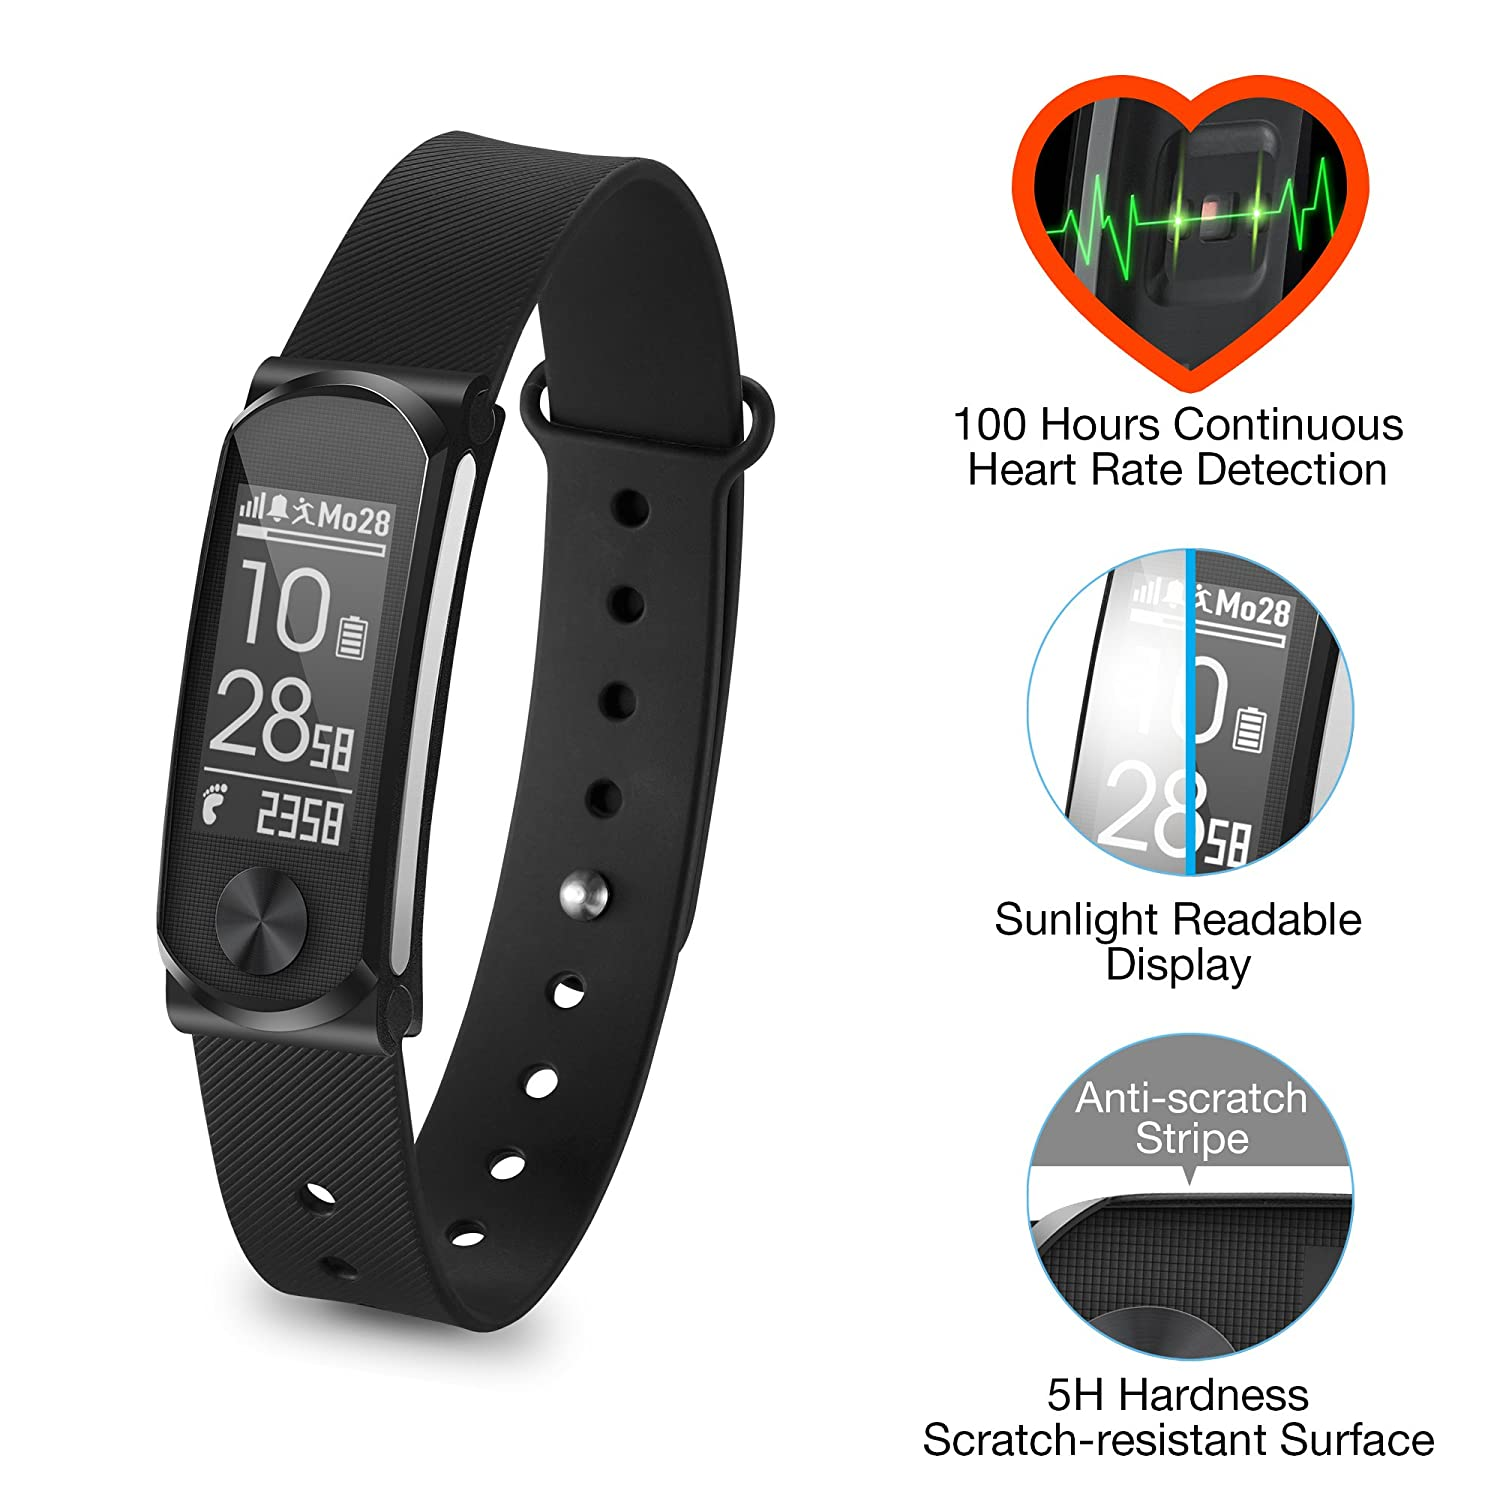 Q Band 68hr Accurate Health Fitness Tracker Watch Heart Rate Monitor Circuit Diagram Click For Larger Image 100 Hours Bluetooth Activity Sunlight Readable Scratch Resistant Big Screen Pedometer Sports Outdoors